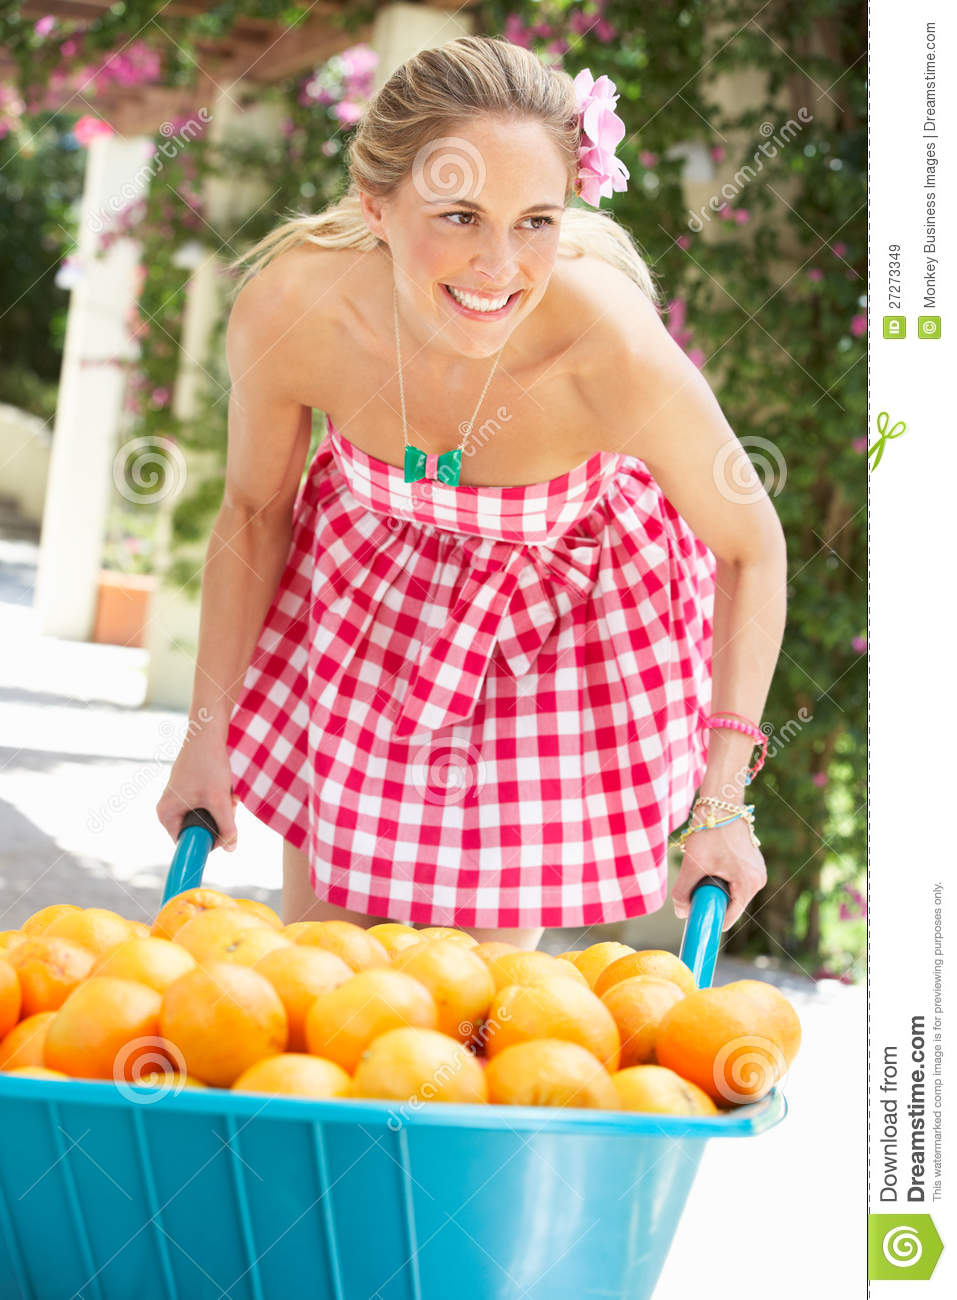 Woman Pushing Wheelbarrow Filled With Oranges Royalty Free ...